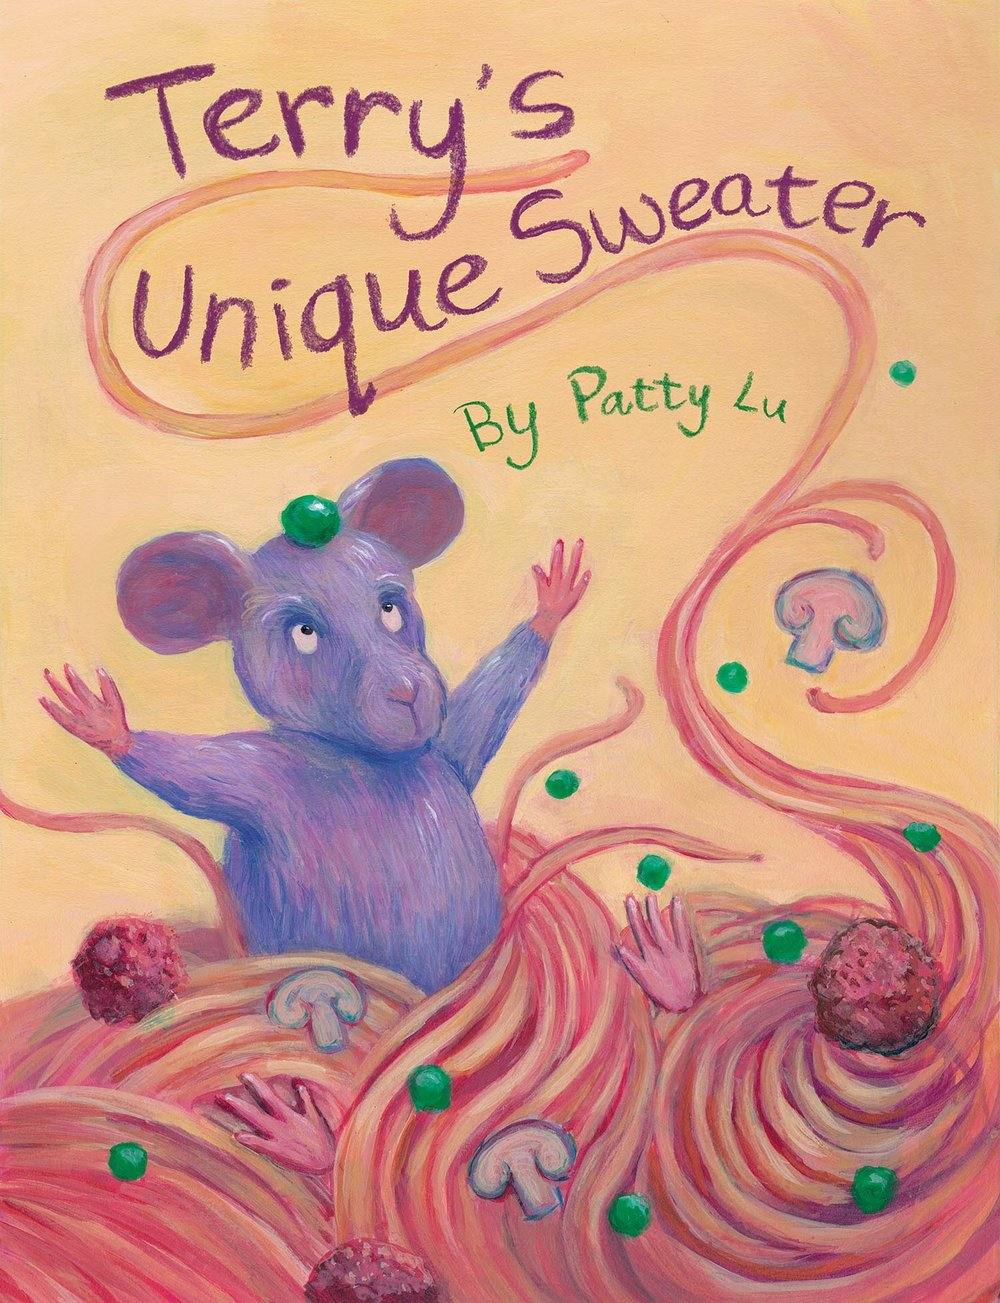 Terry's Unique Sweater Book Cover